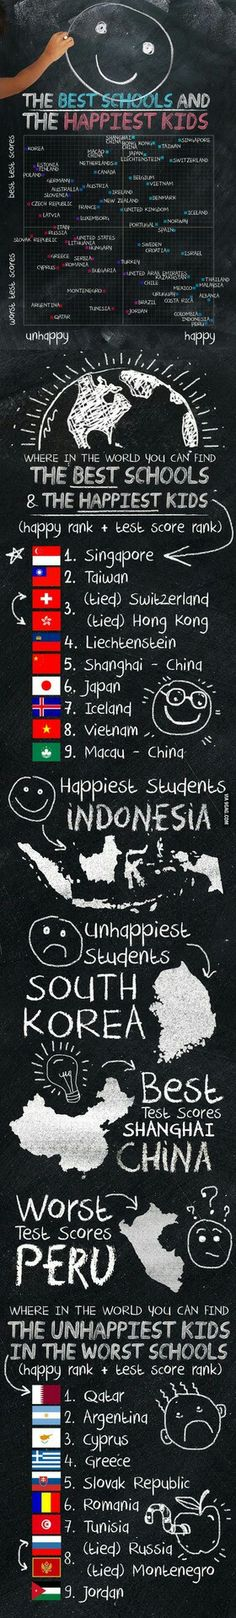 The Best School and The Happiest Kid. Look at Indonesia's position! XD